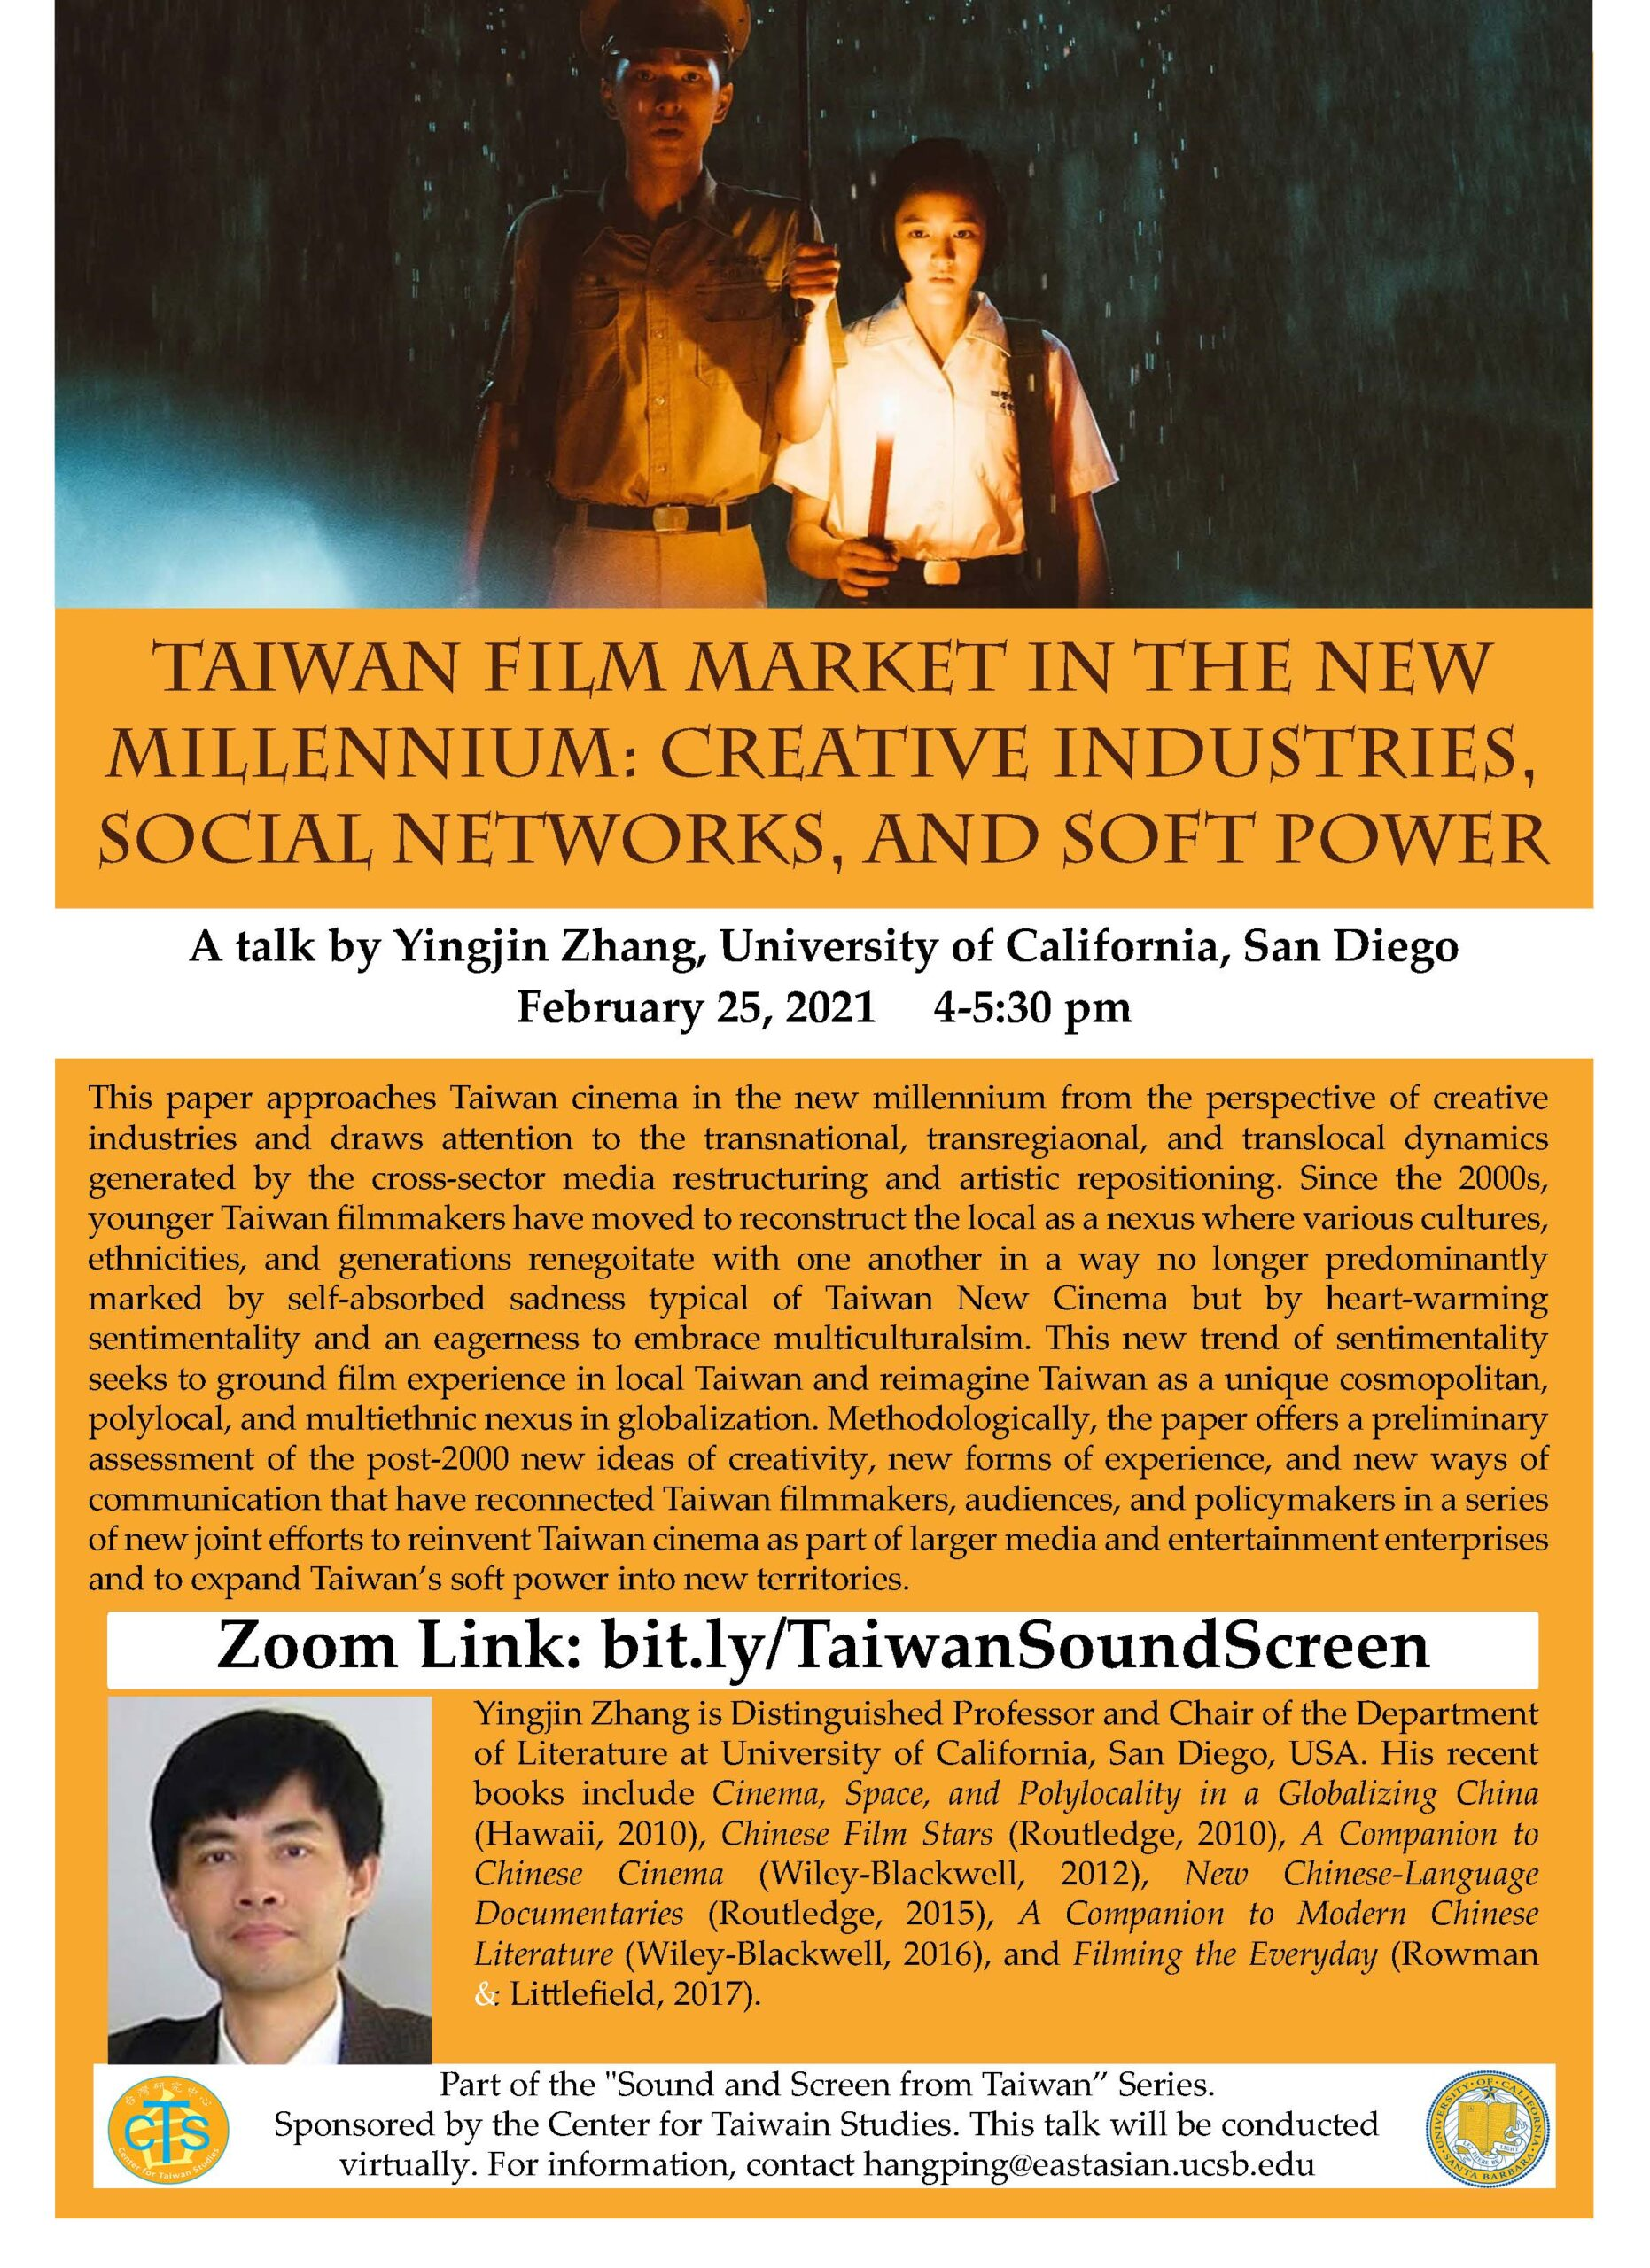 """Flyer for """"Taiwan Film Market in the New Millennium: Creative Industries, Social Networks, and Soft Power"""" by Yingjin Zhang at UCSD on 2/25/21 at 4-5:30PM"""